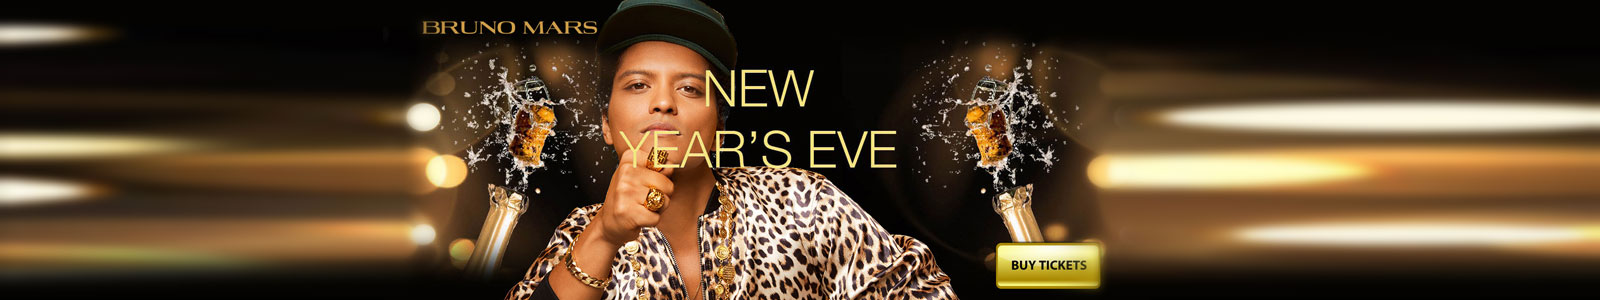 Bruno Mars New Years Eve 2018